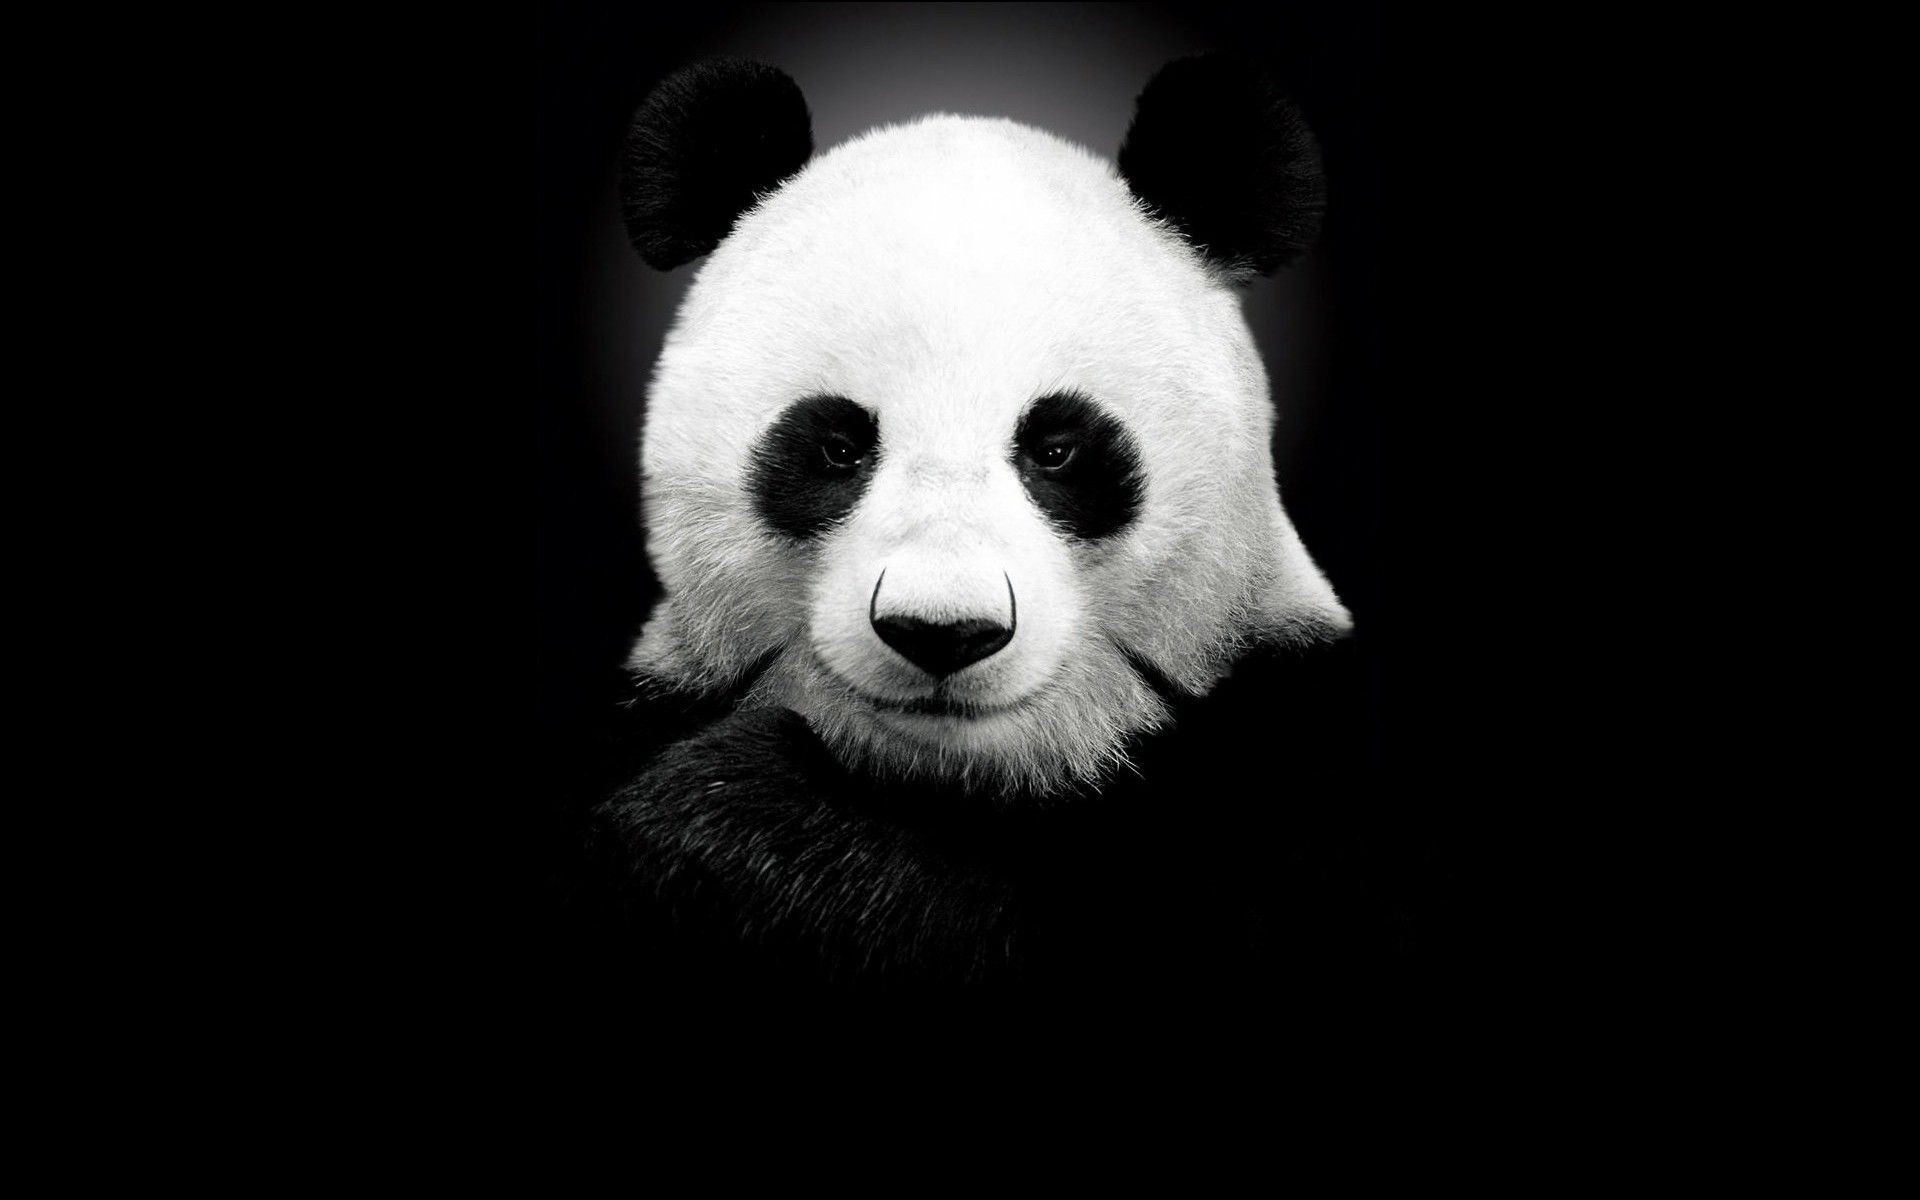 Panda Background Download Free Stunning Full Hd Wallpapers For